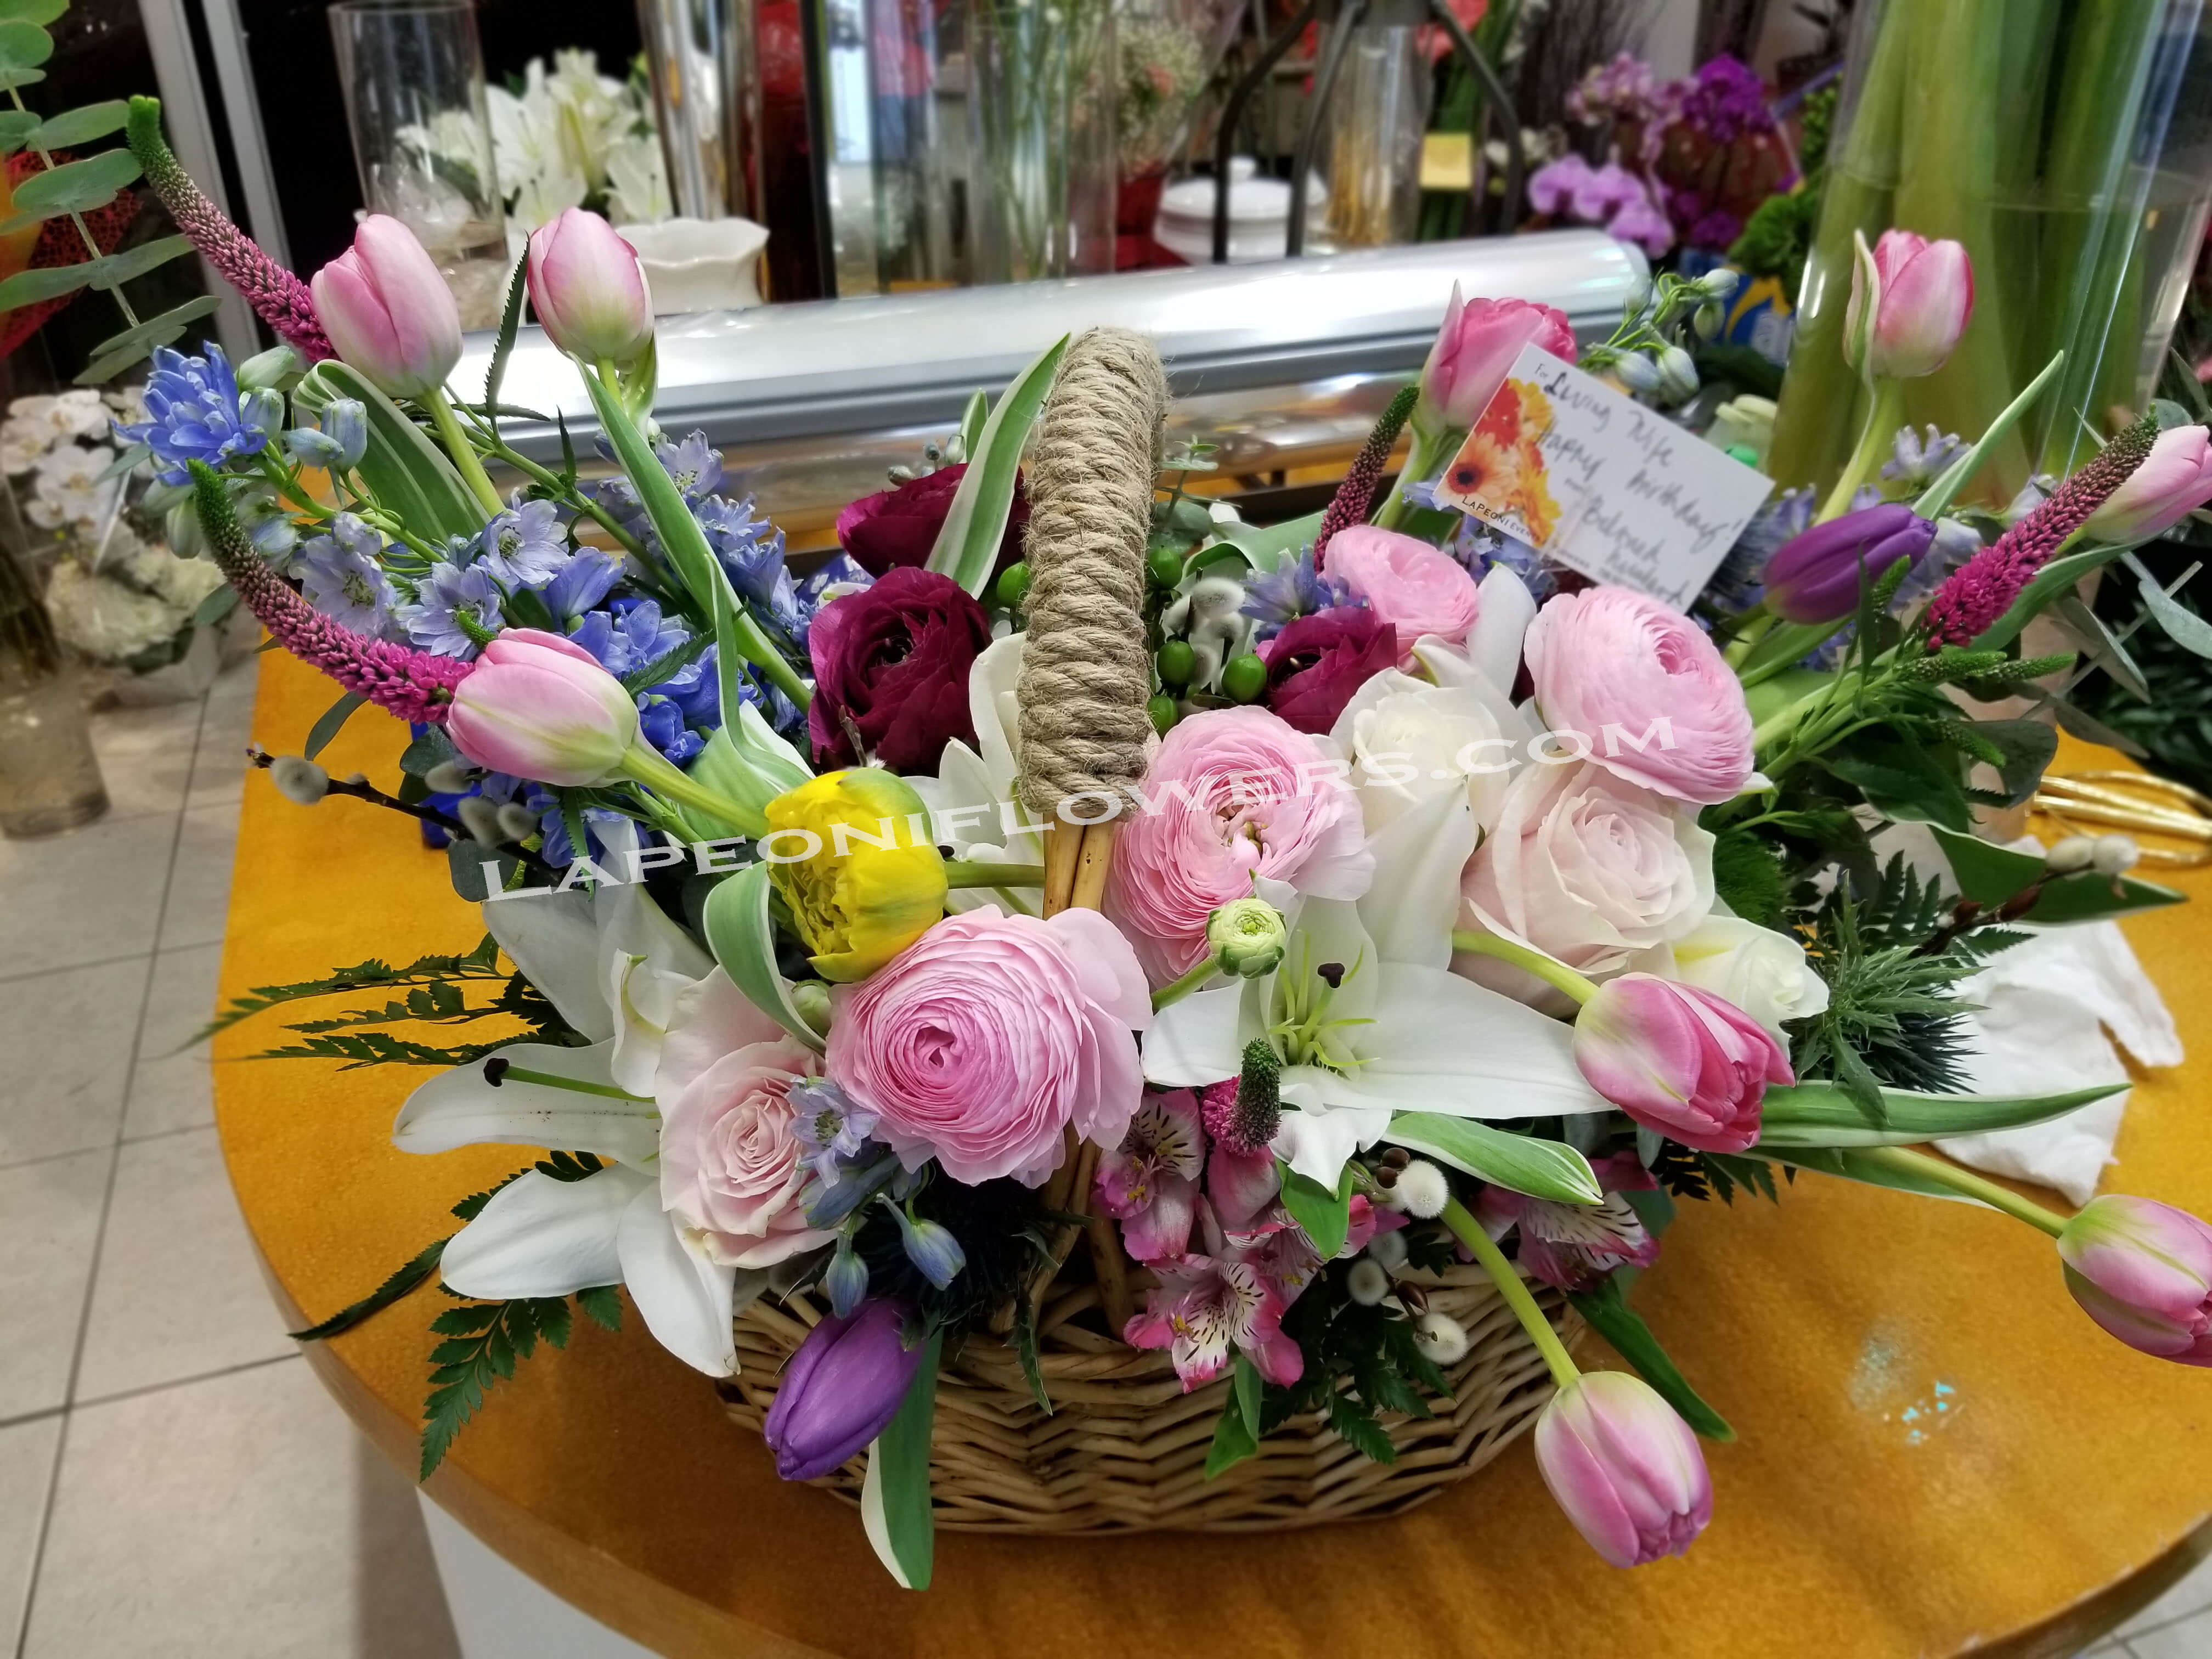 Flower Basket Gift - Lapeoni Flowers and Events